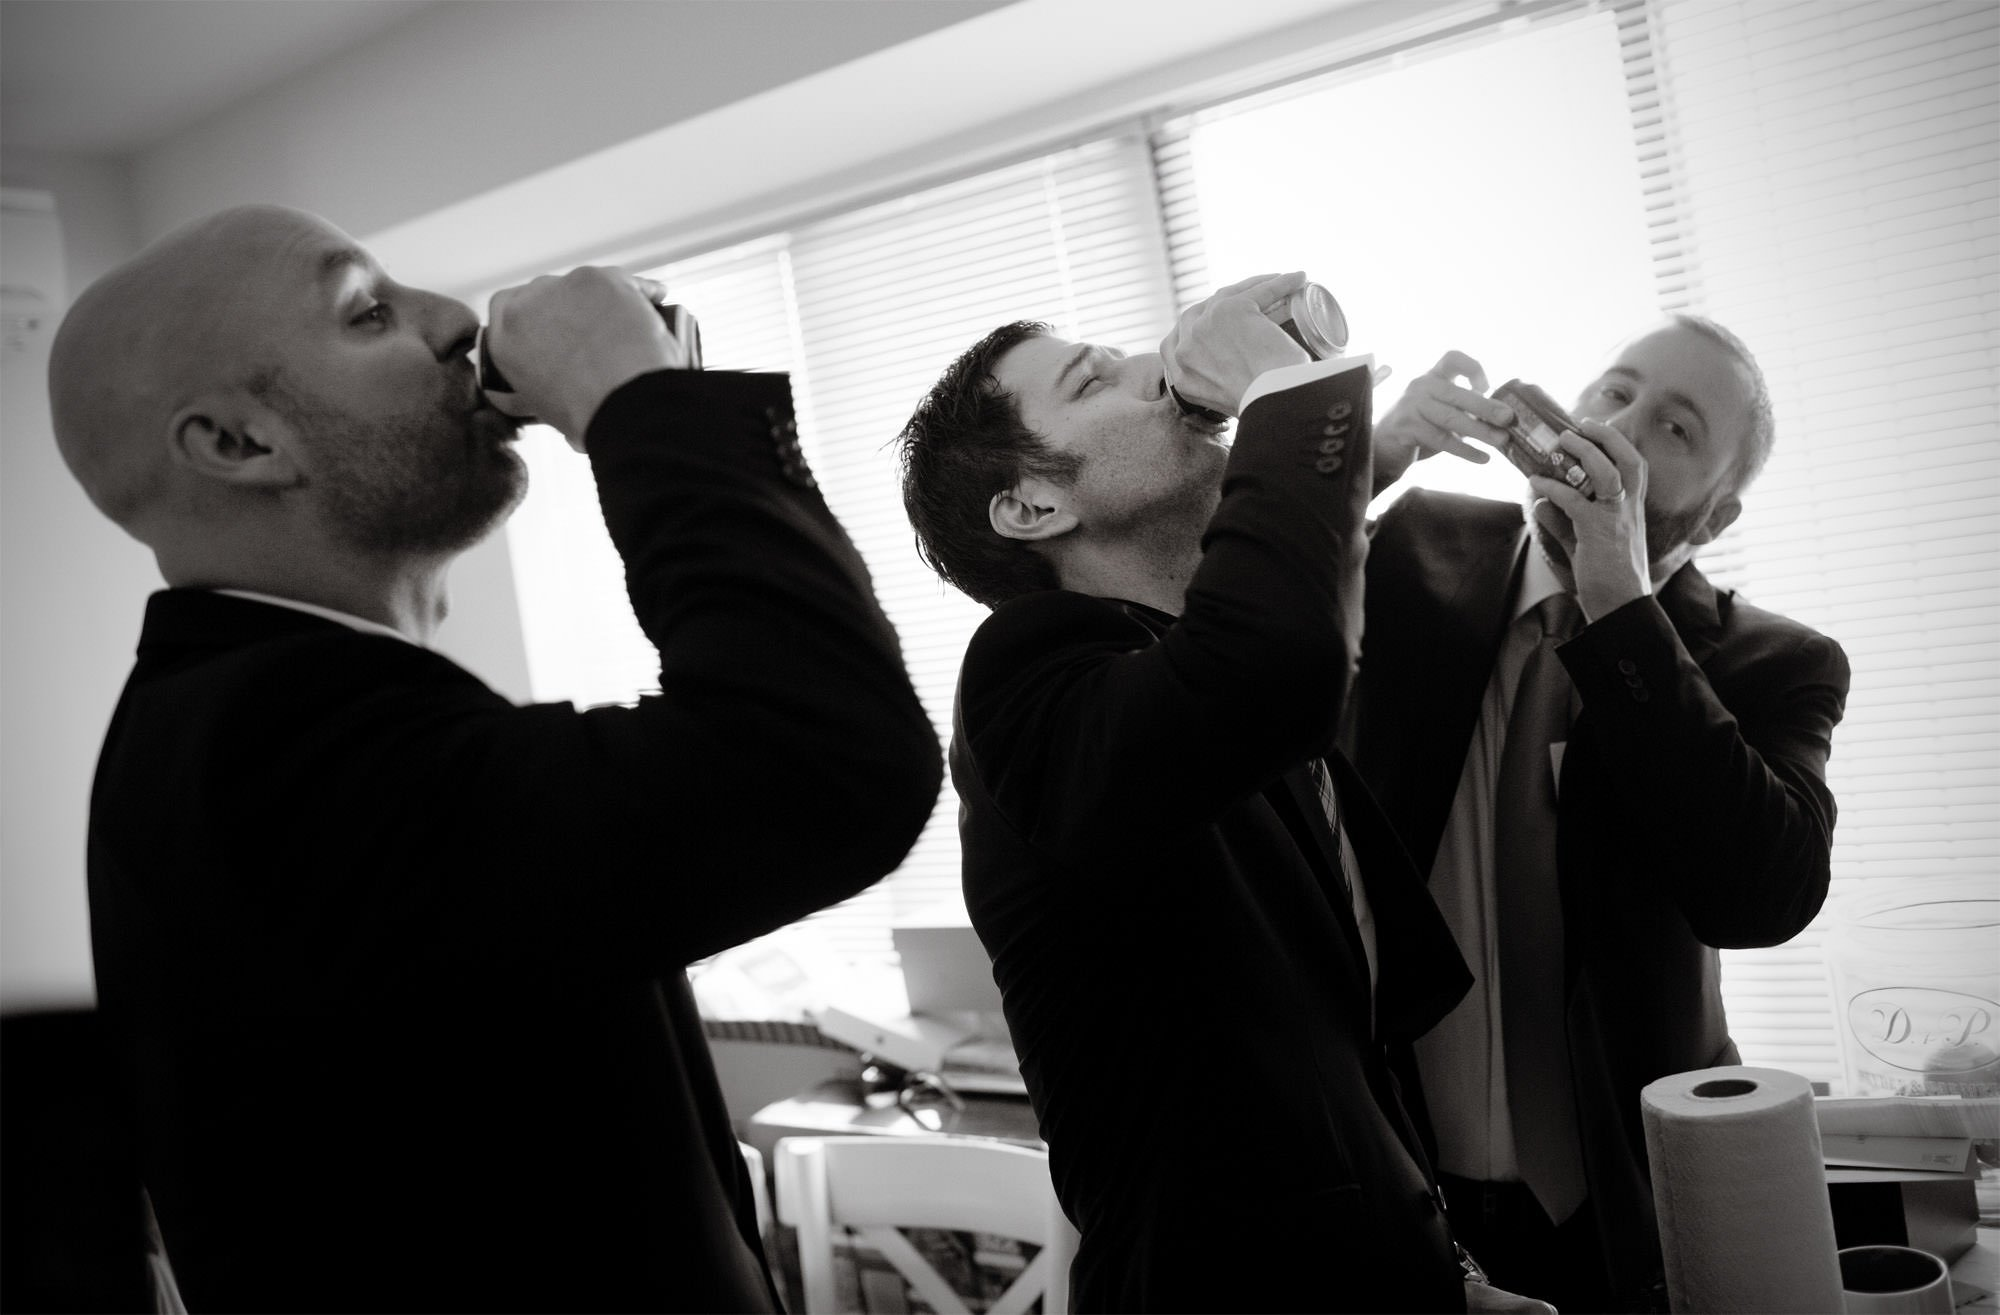 Groomsmen drink beers while getting ready before the Epic Yoga Studio wedding.